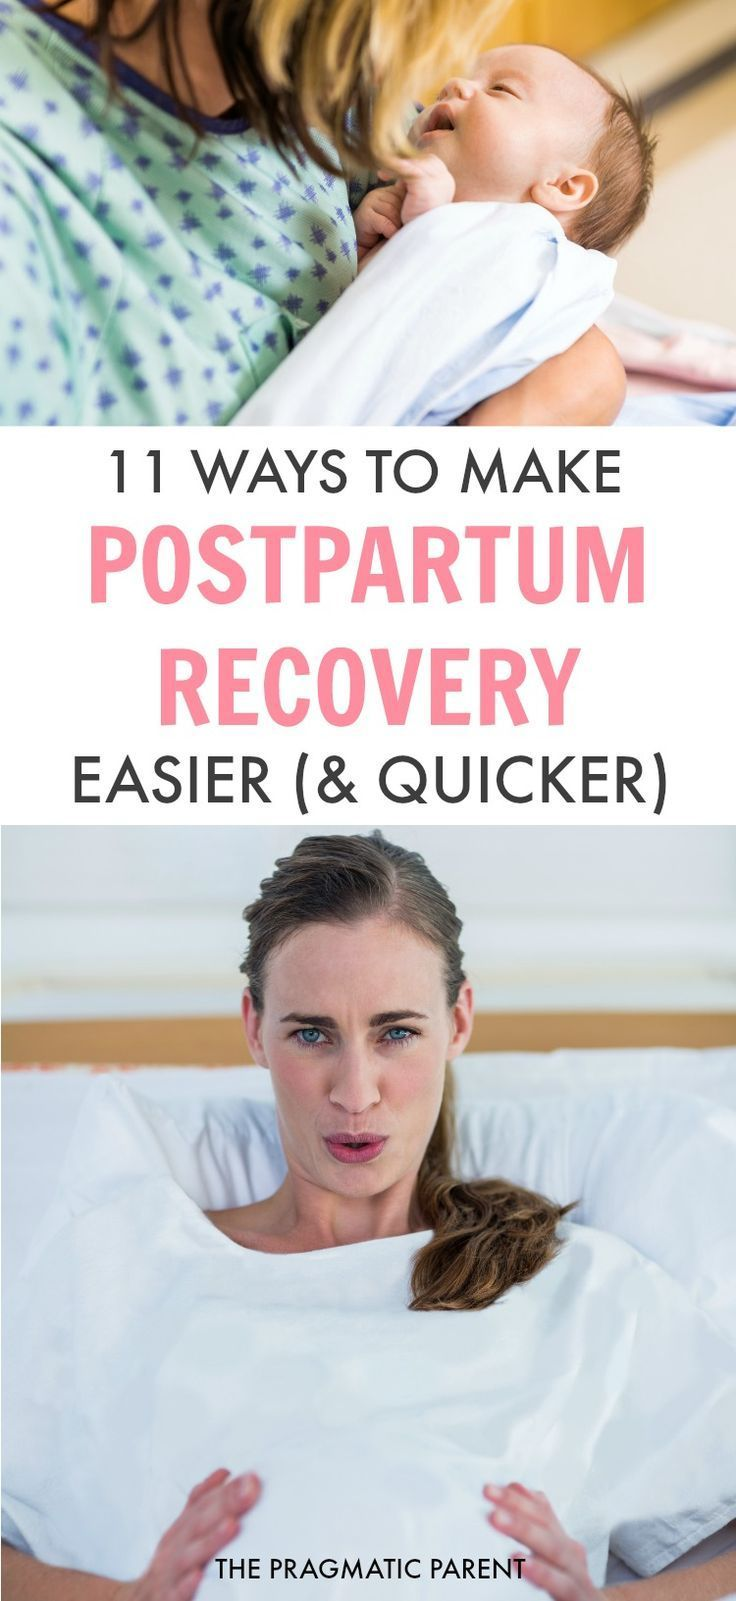 Labor is a grueling process and postpartum recovery can be a real pain. Proper postpartum care is necessary for healing, and ultimately makes your postpartum recovery easier and quicker. 11 ways to make postpartum recovery easier and speedier. Learn how to care for your postpartum body in the 6-8 weeks after delivery. #postpartumrecovery #postpartumcare #whattoexpectpostpartum #recoveringafterbirth